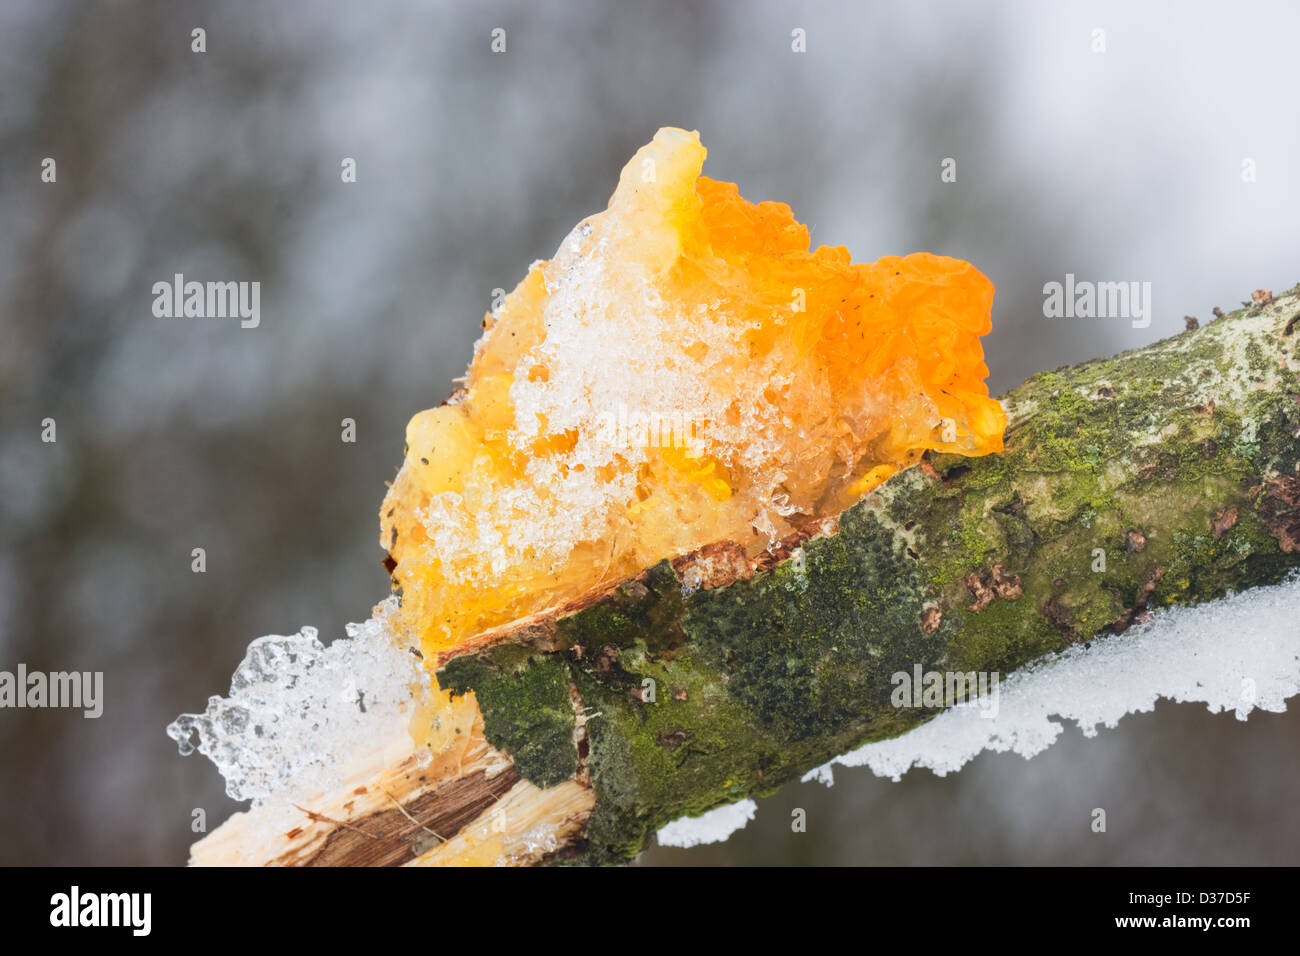 Yellow Brain Fungus or Golden Jelly Fungus (Tremella Mesenterica), covered with snow and ice, on Oak - Stock Image